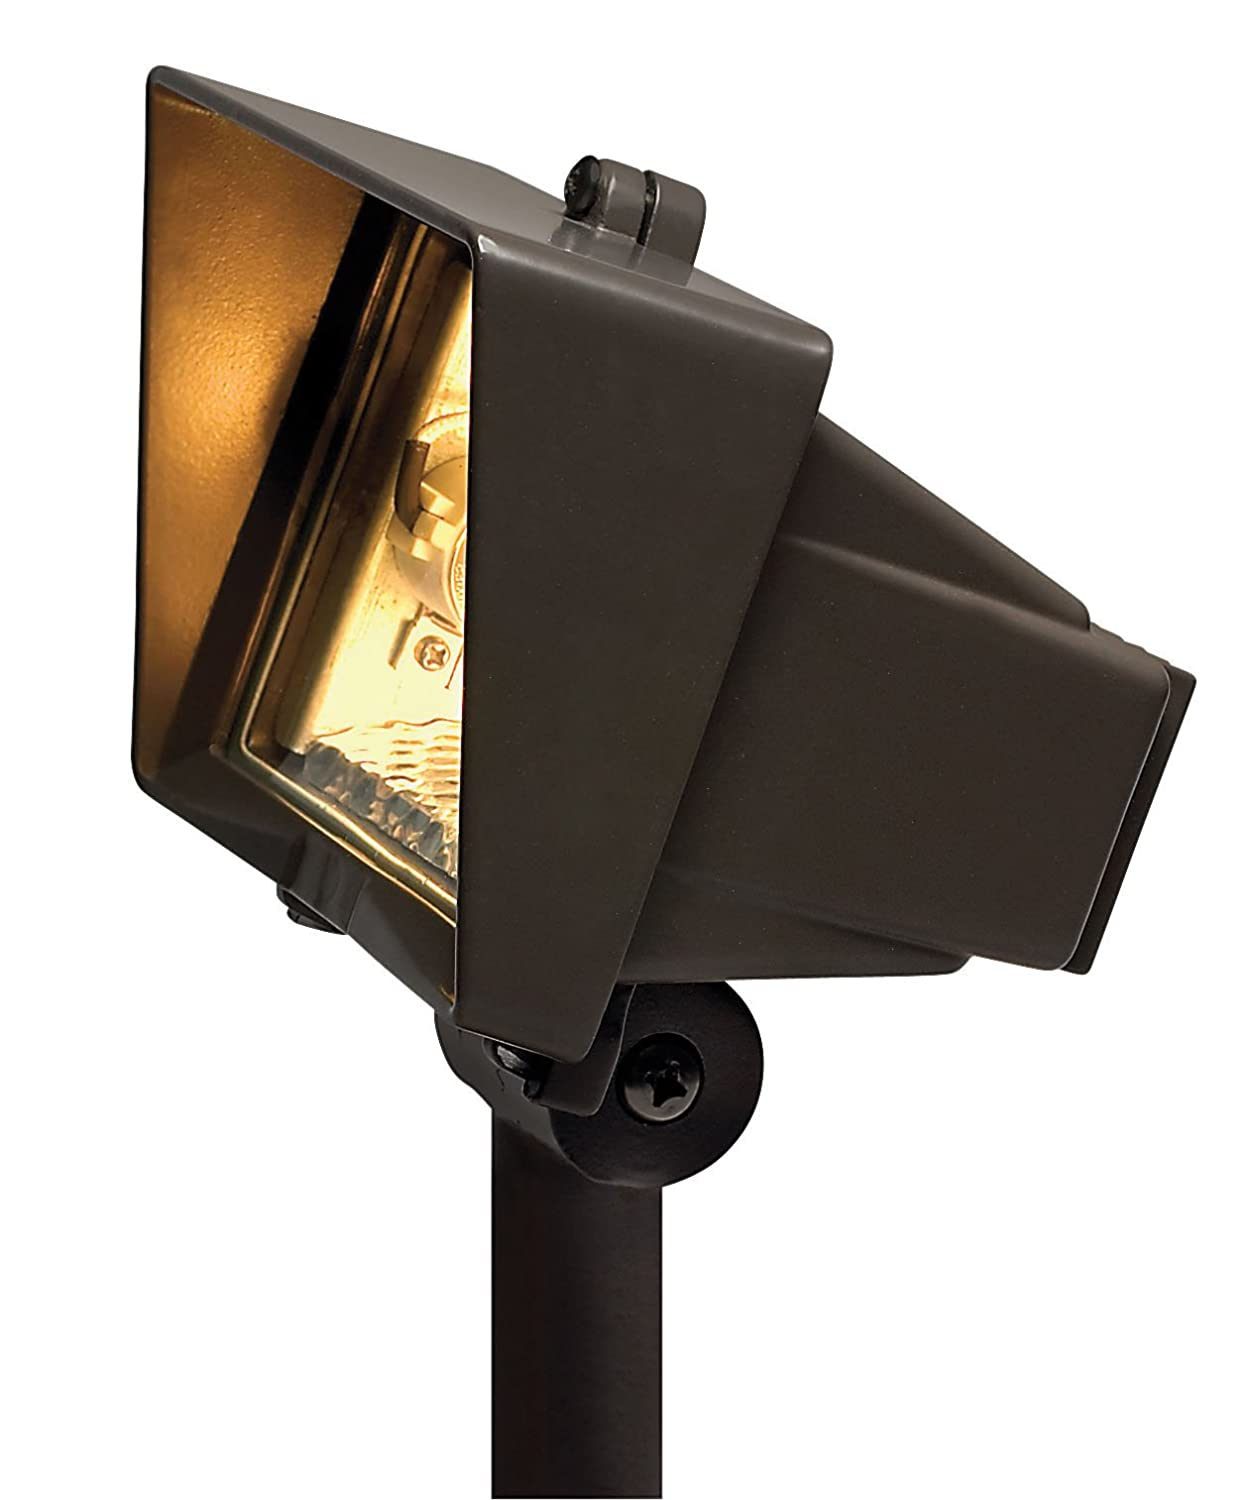 Amazon hinkley lighting 57000bz 120v line voltage flood light amazon hinkley lighting 57000bz 120v line voltage flood light 75 watt maximum mini can halogen light bulb bronze home improvement mozeypictures Gallery